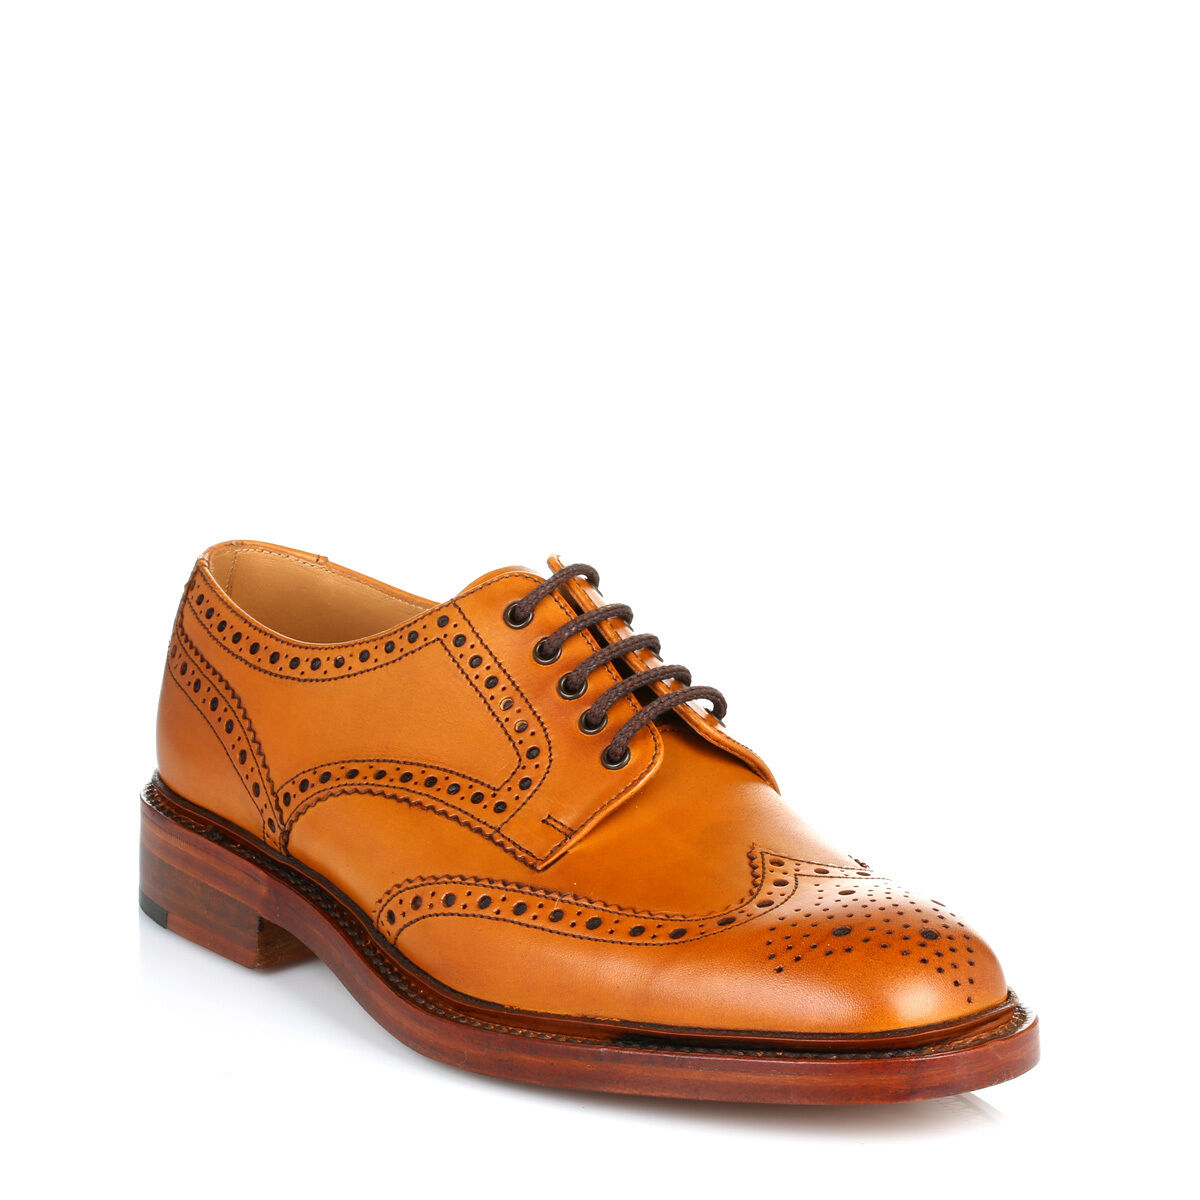 Loake Da Uomo Tan Brown CALATA Scarpe Derby, Smart Casual Chet 2